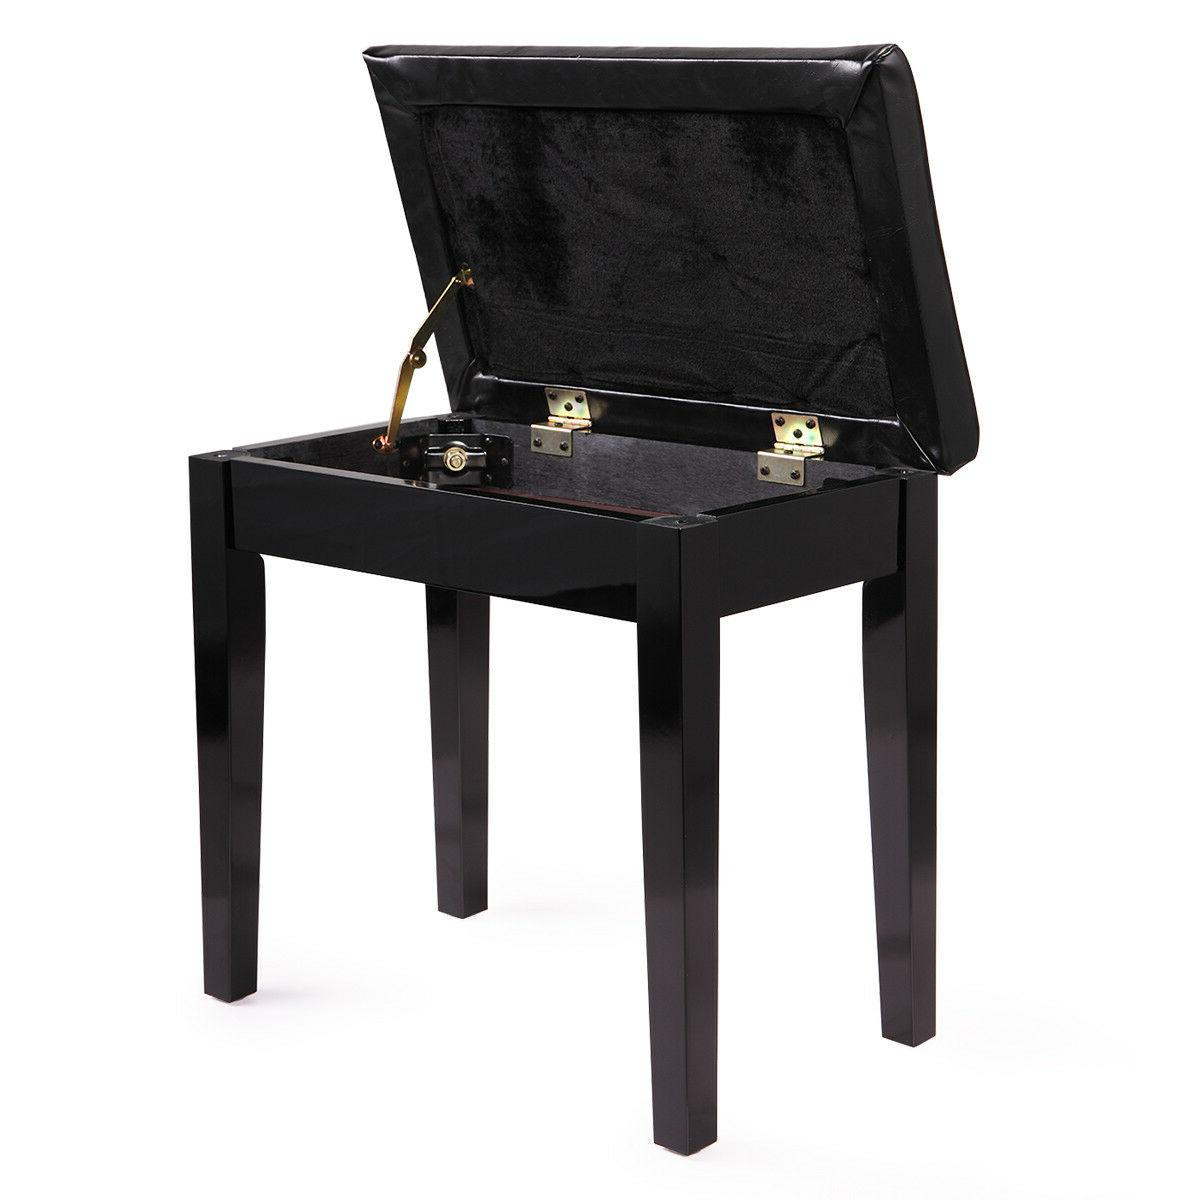 Wood Leather Piano Concert Keyboard Seat Storage